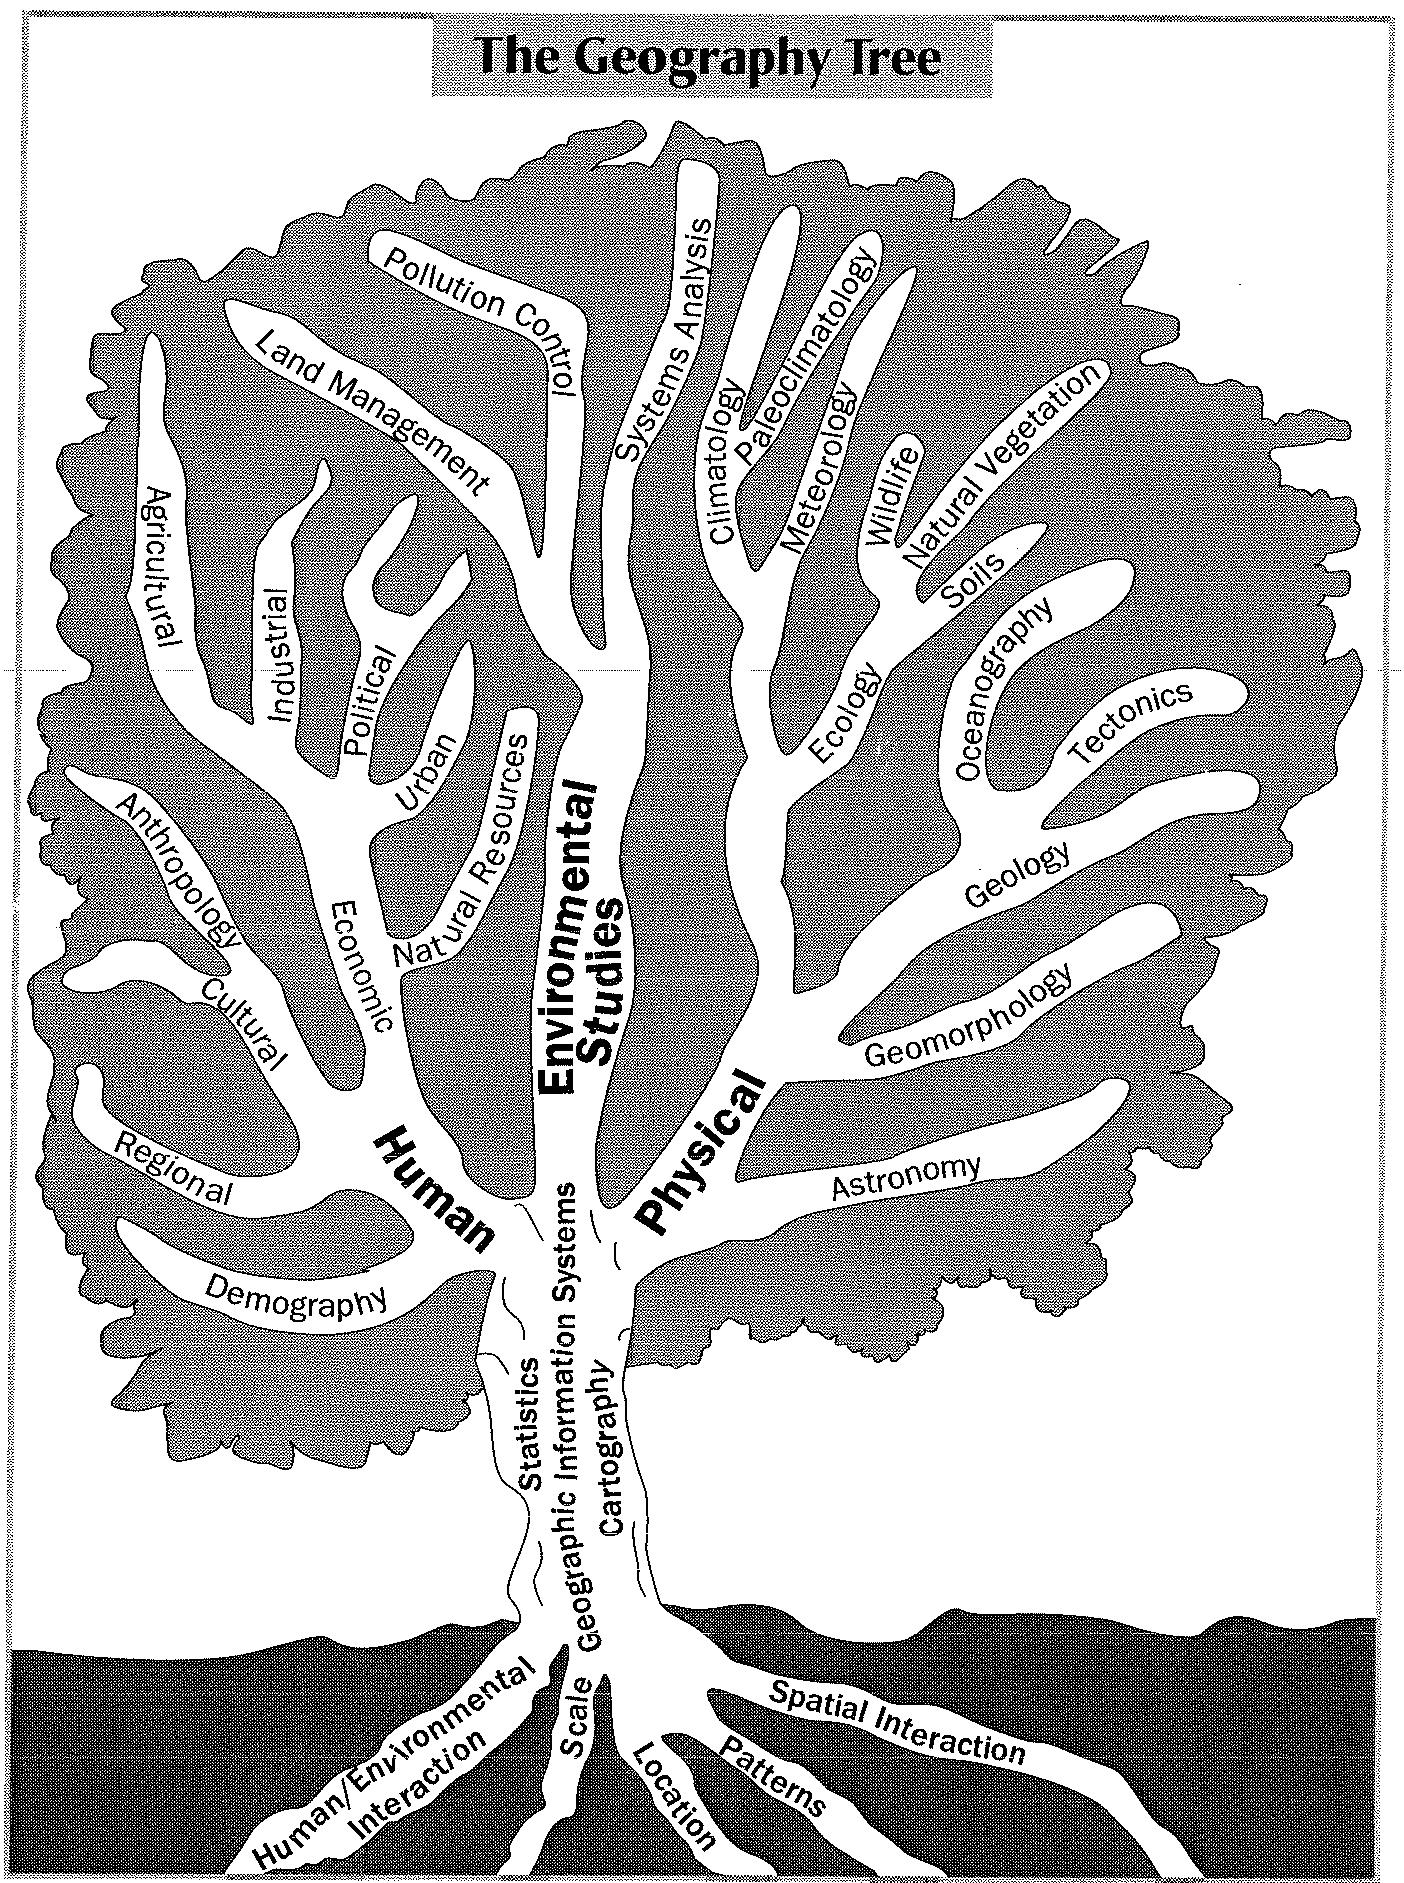 Geography Tree.JPG